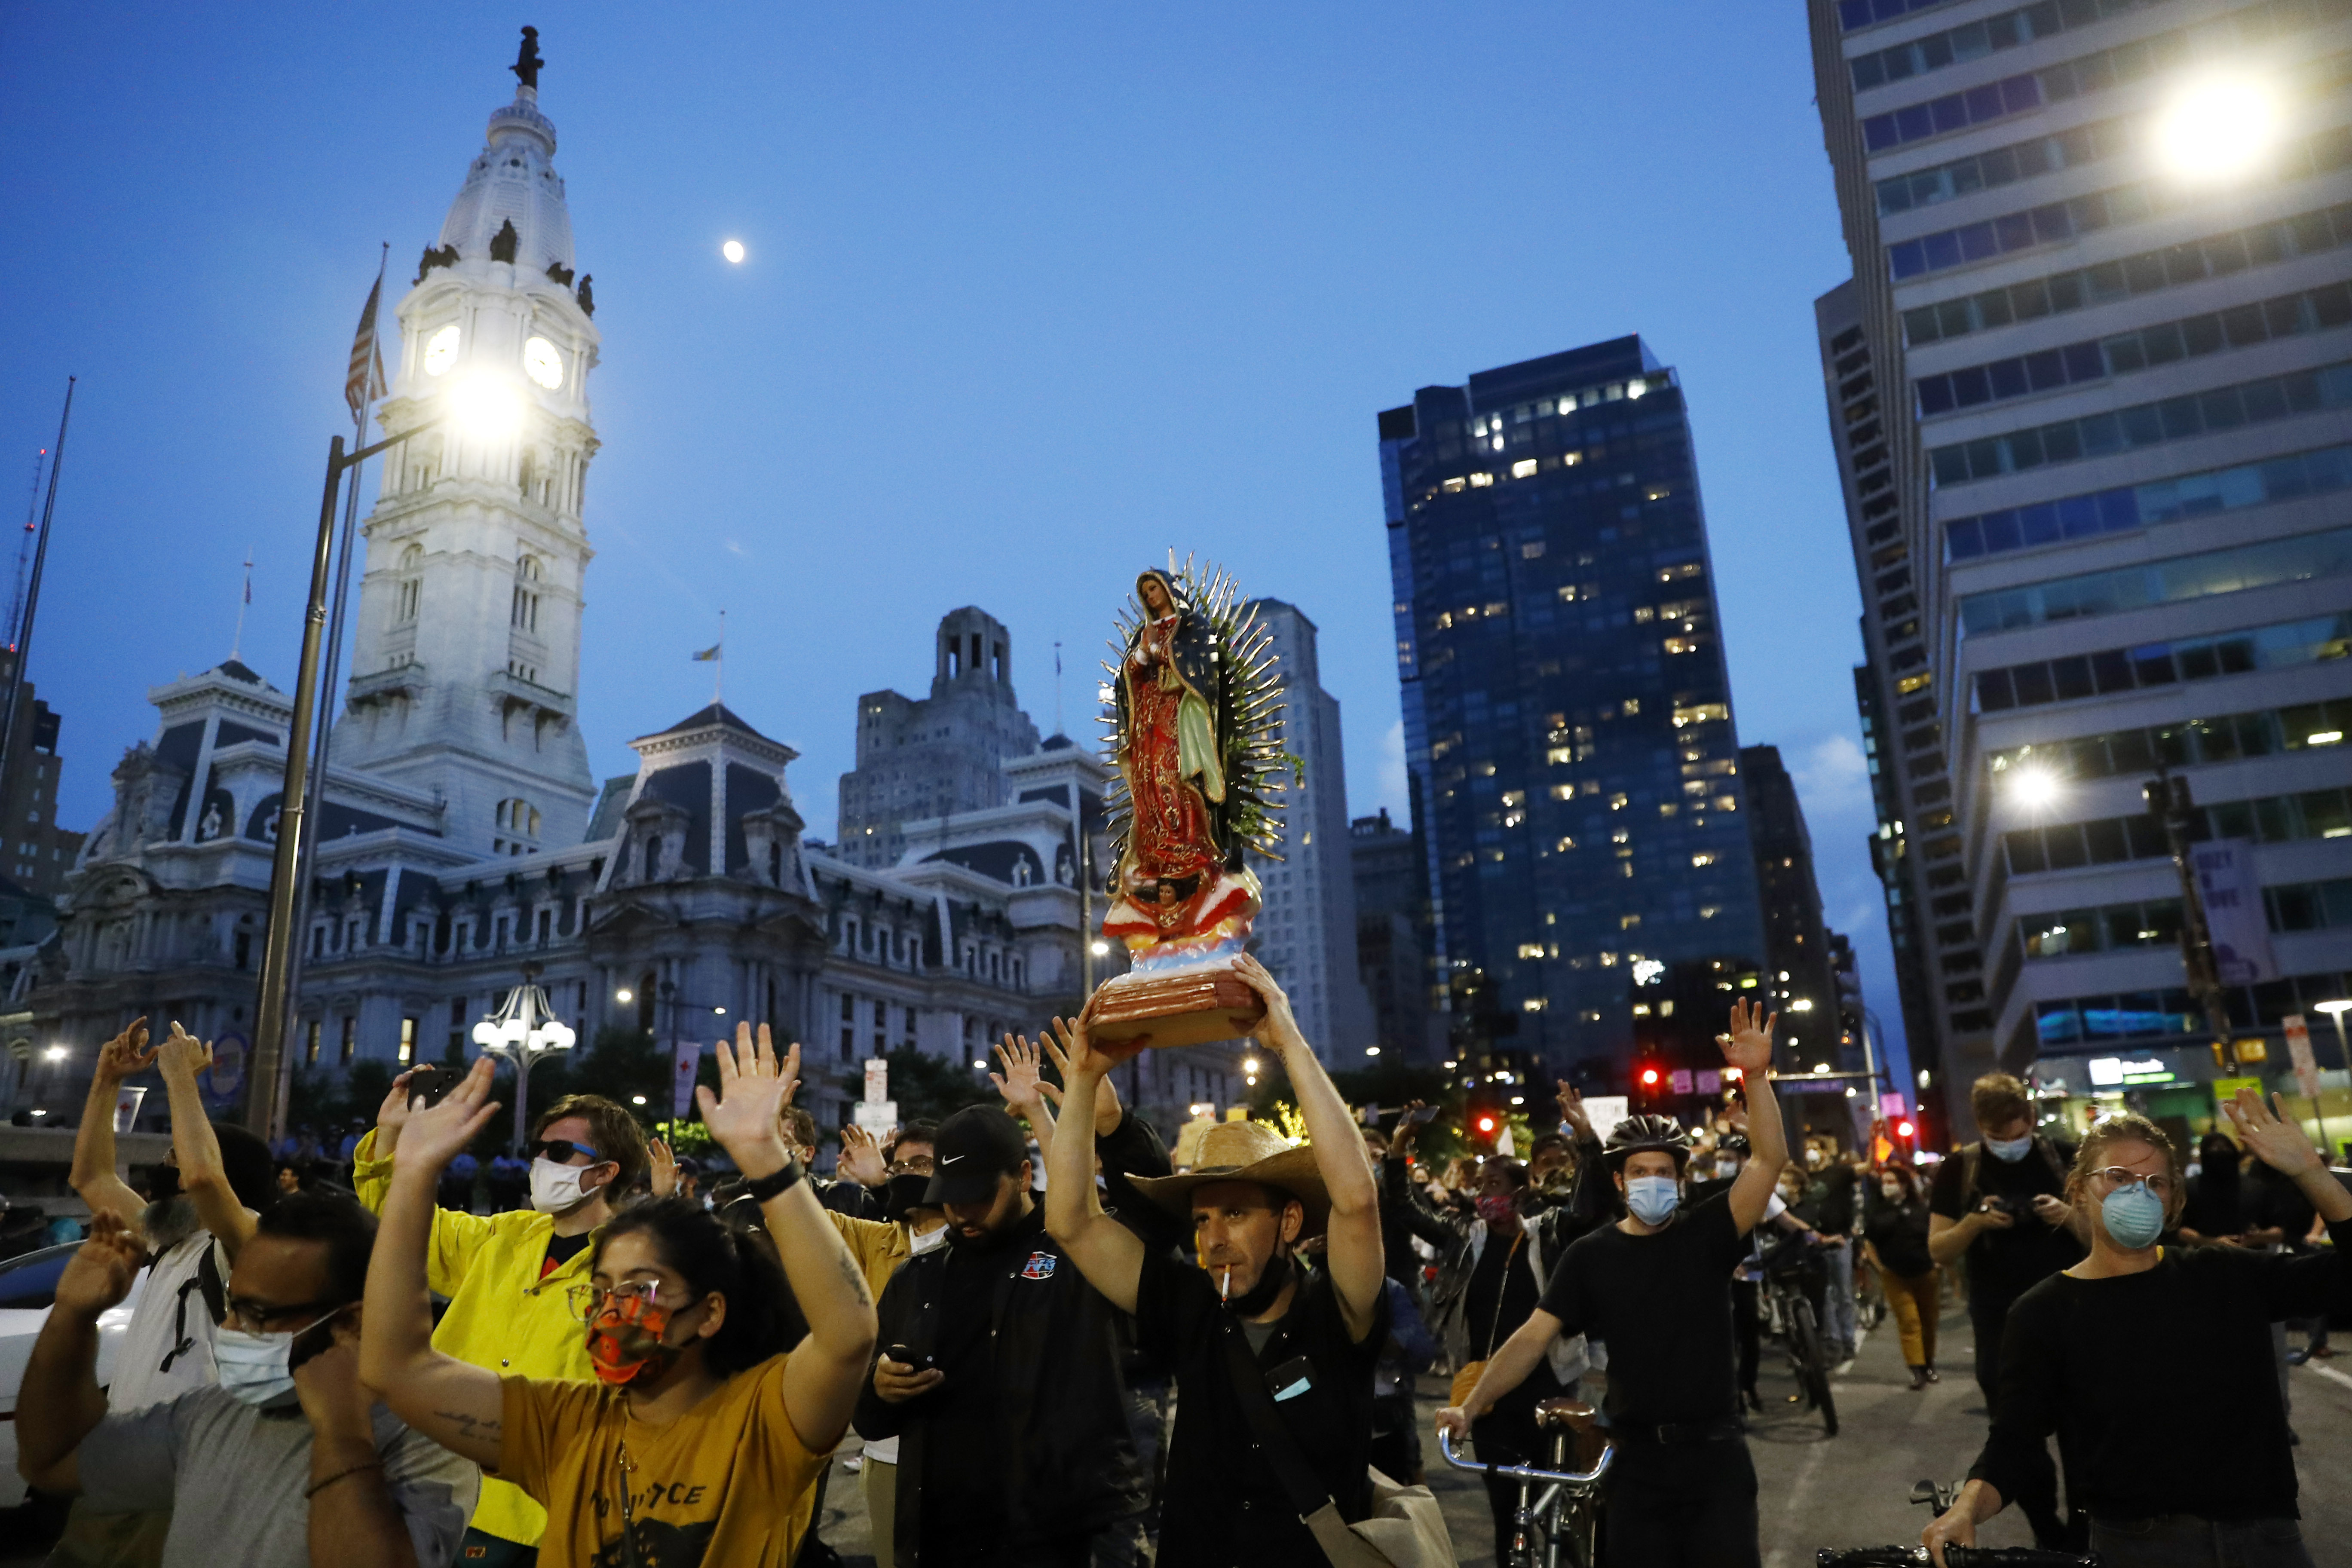 Protesters march past City Hall on June 2 in Philadelphia over the death of George Floyd.